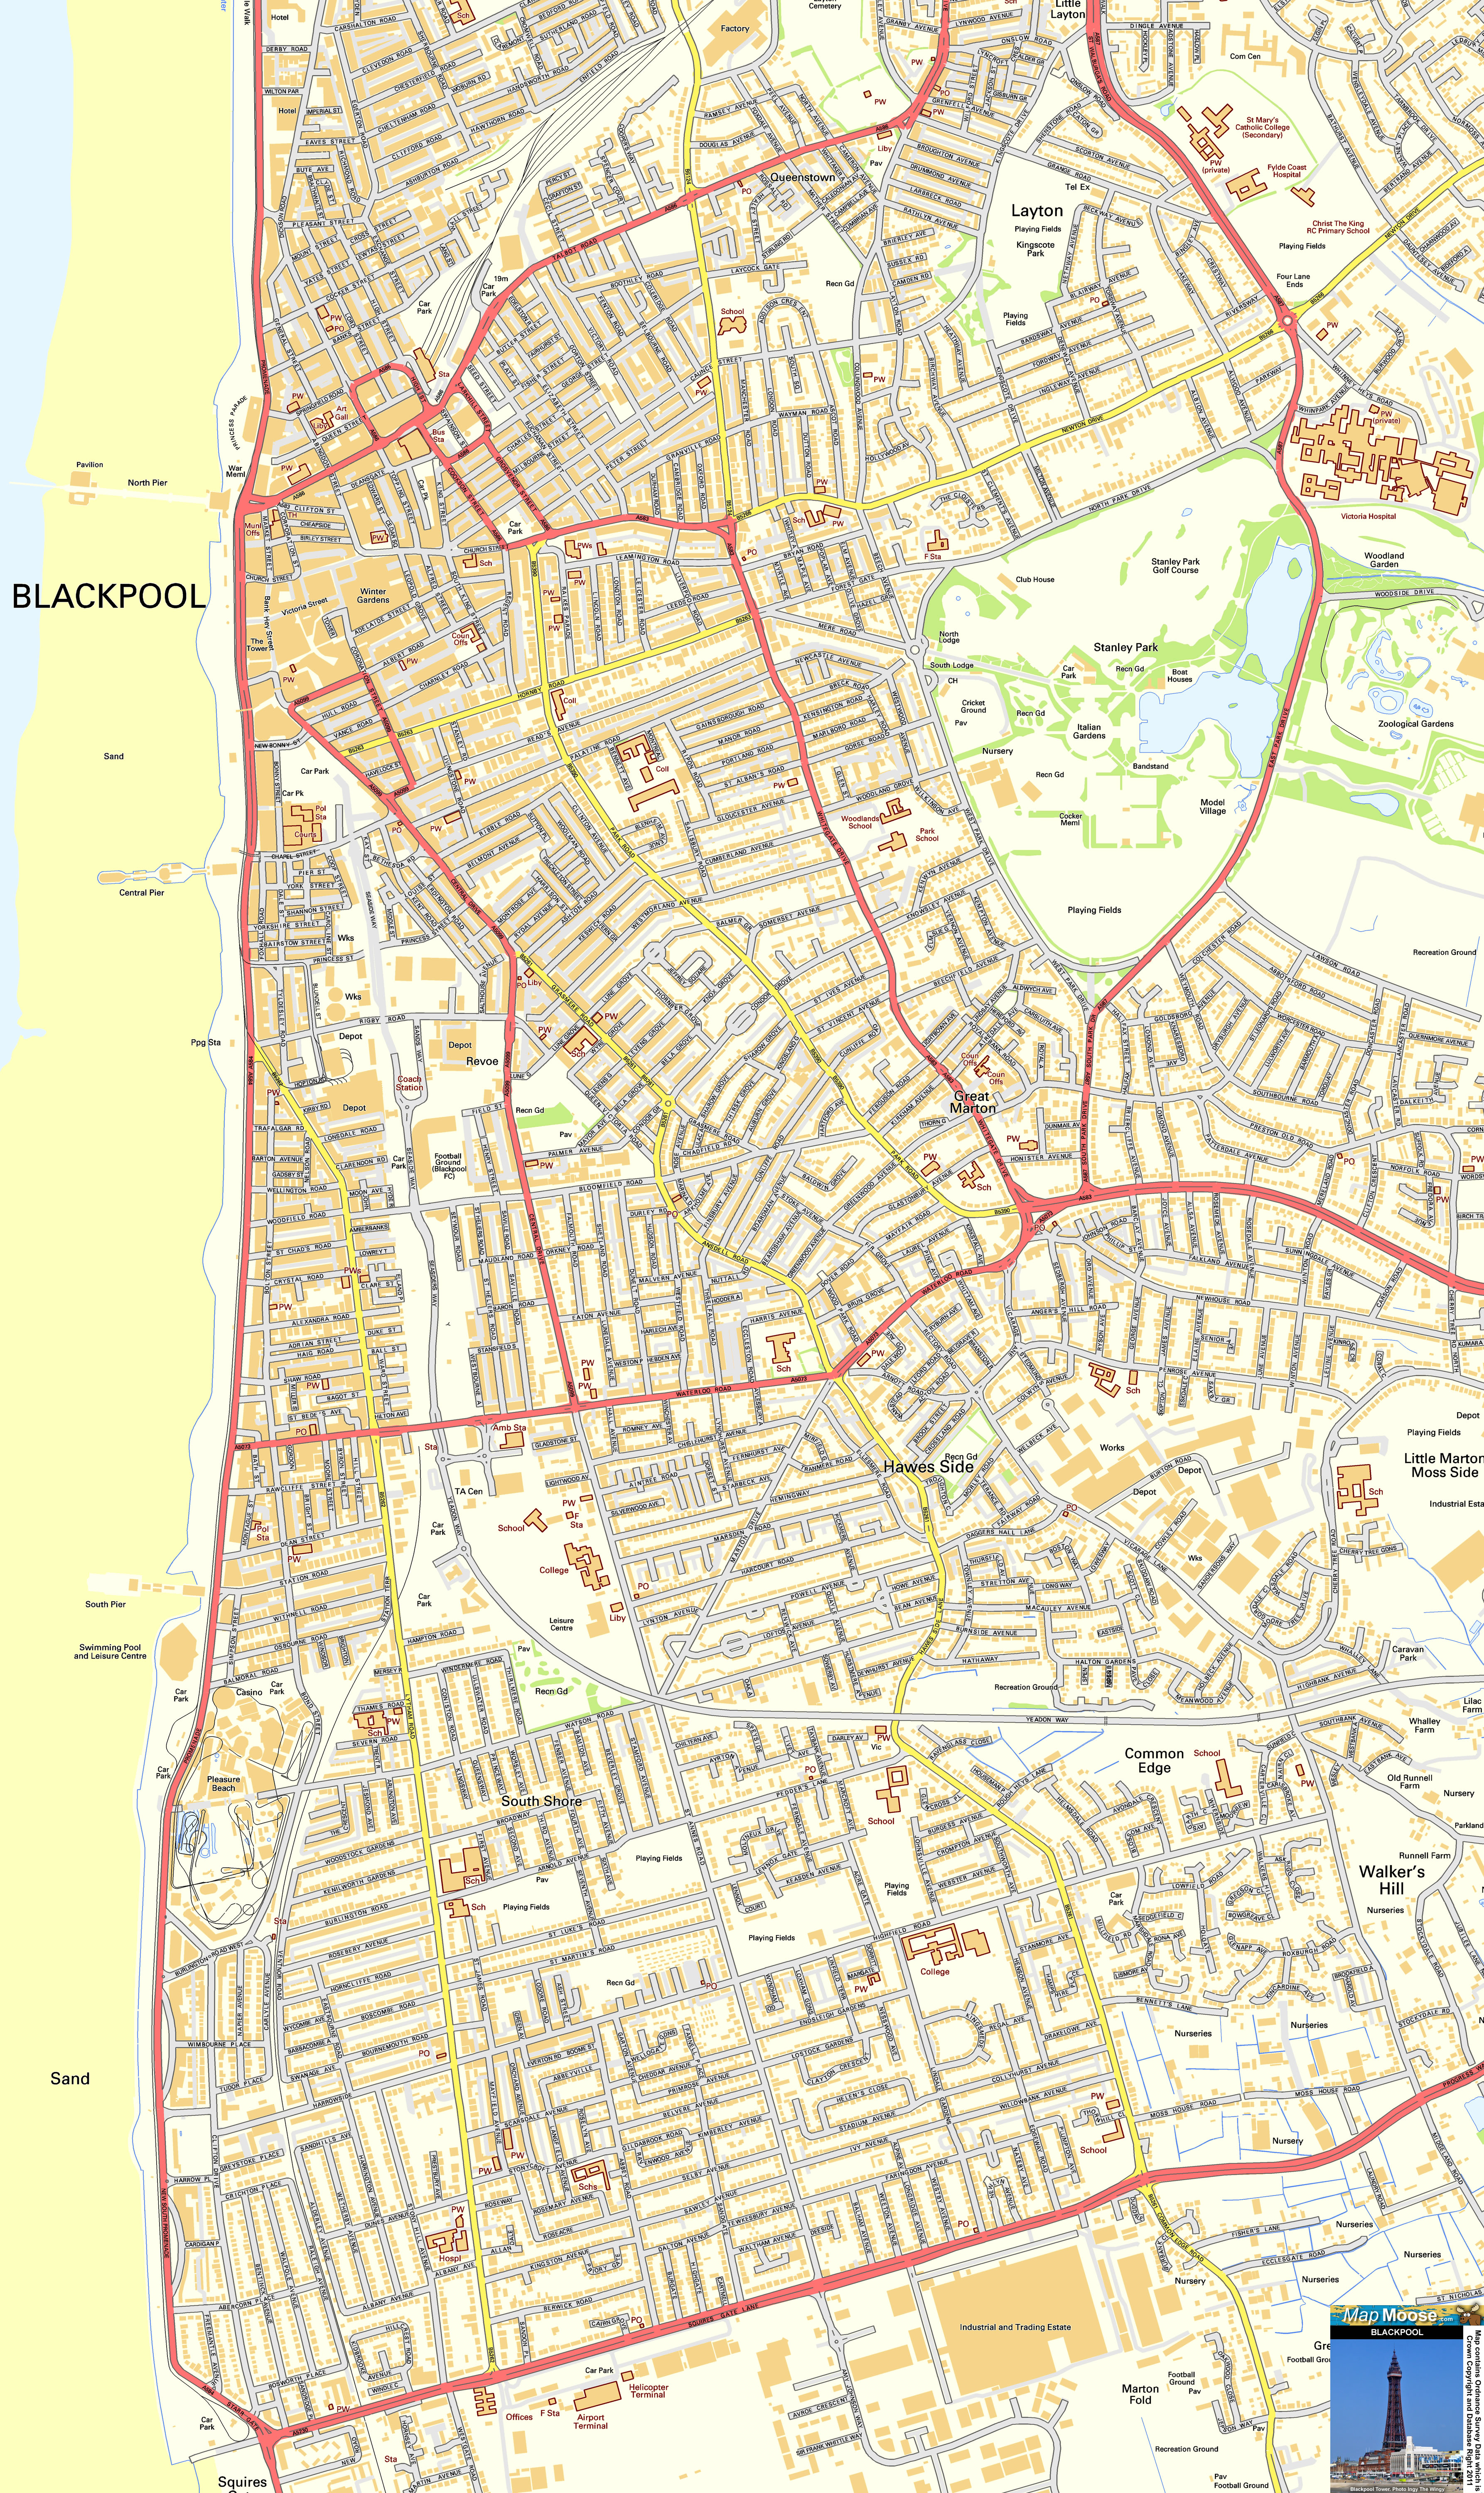 Blackpool Offline Street Map Including The Blackpool Tower - Blackpool map